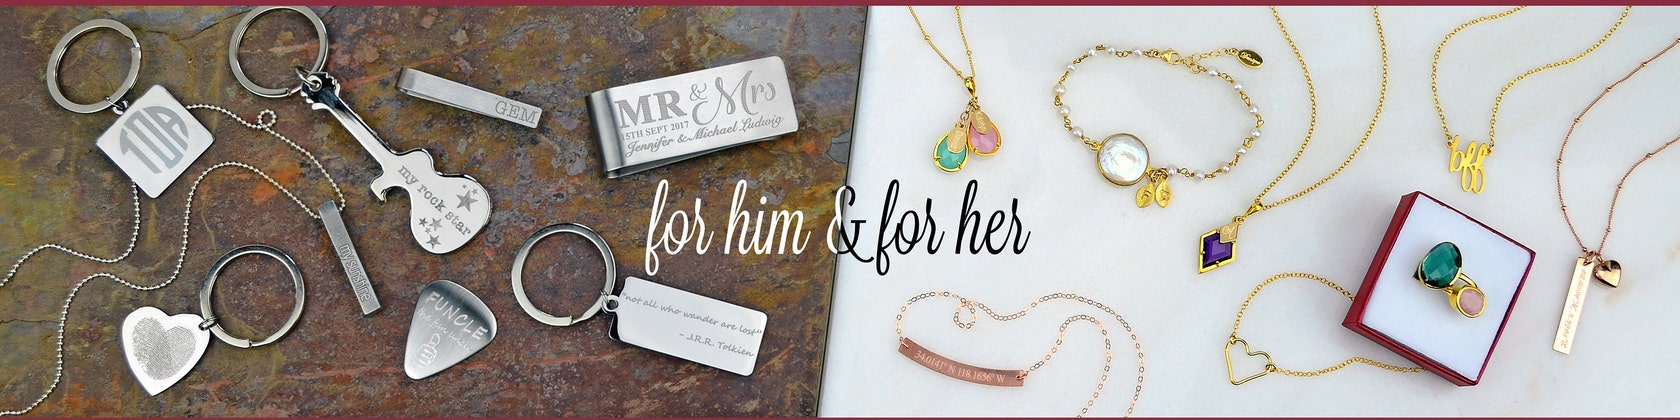 Personalized birthstone jewelry designs by daniquejewelry on etsy daniquejewelry personalized birthstone jewelry designs newton massachusetts negle Choice Image